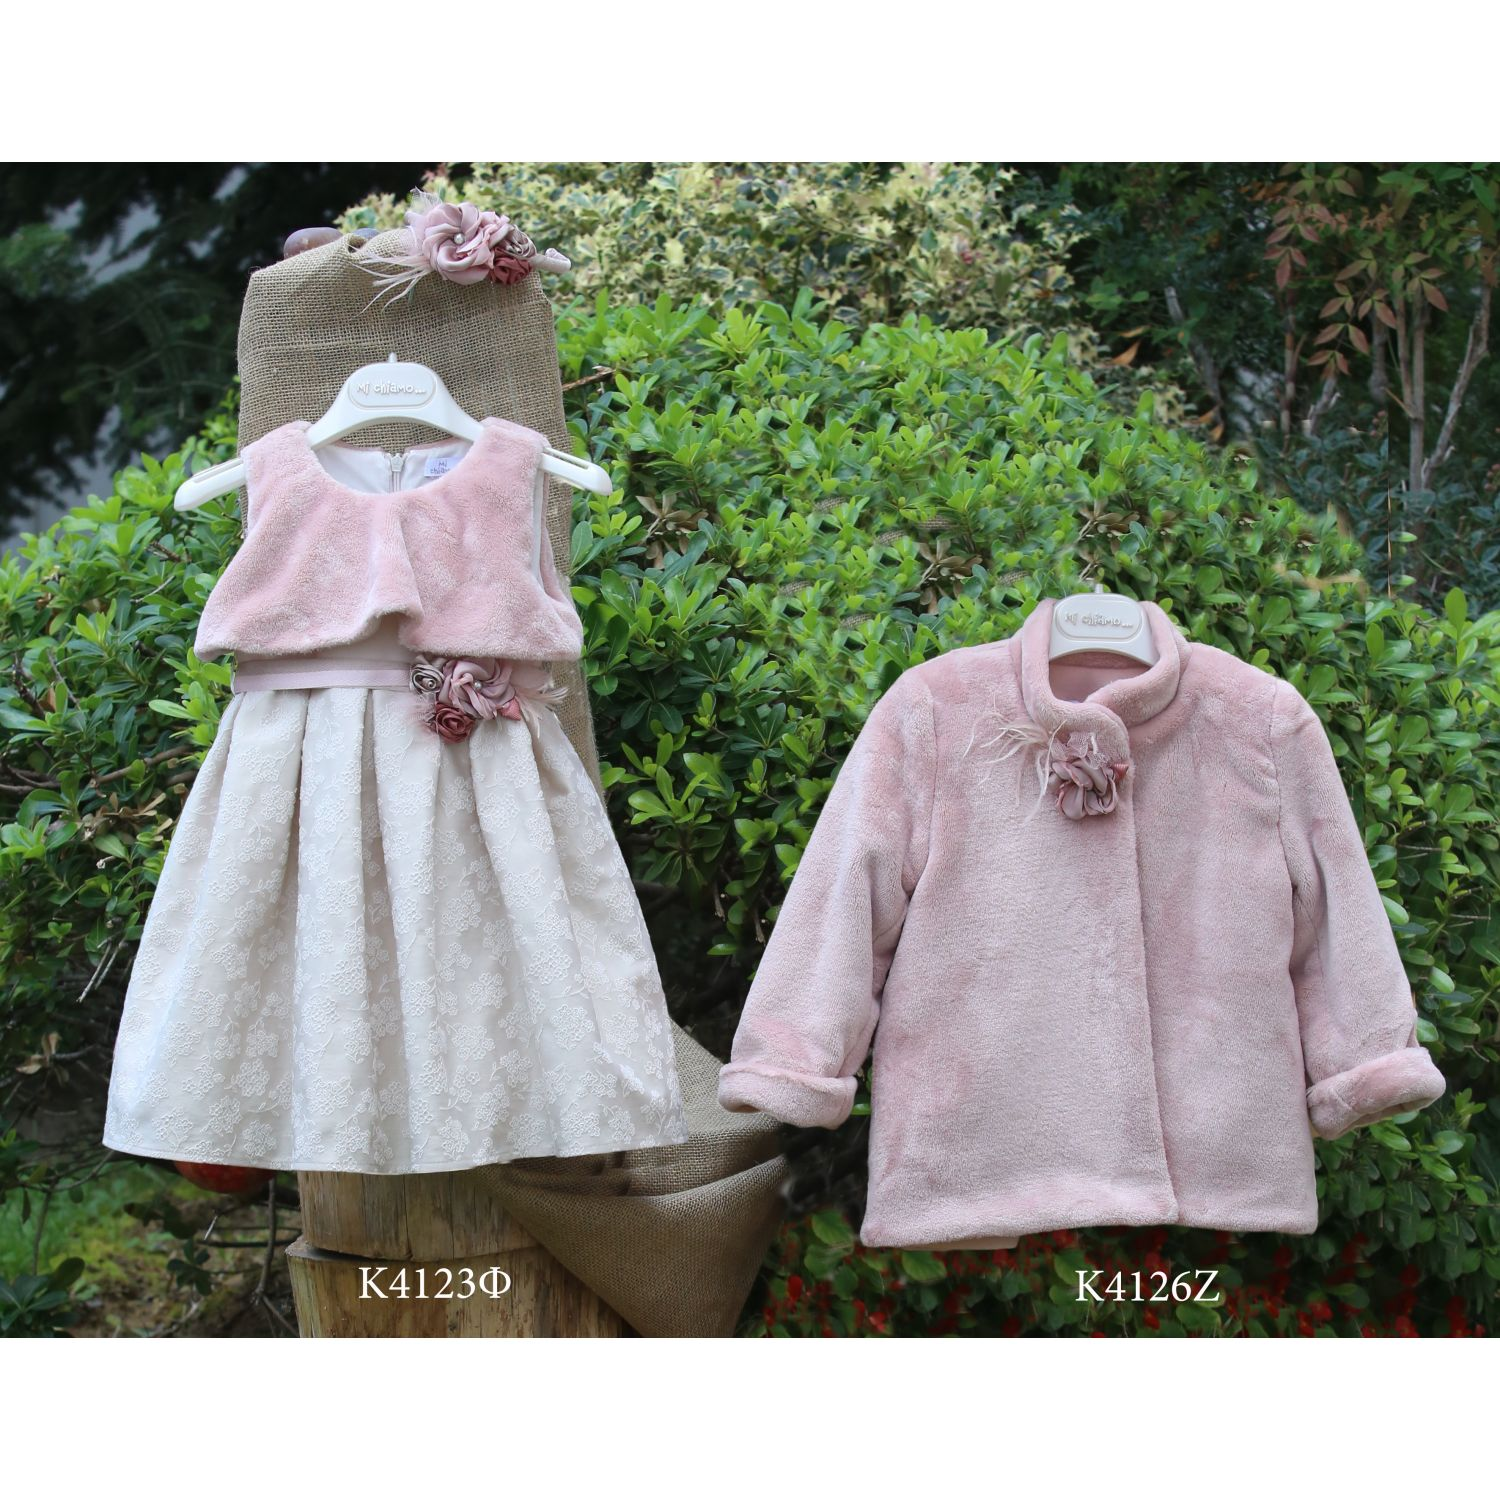 Winter christening clothes with fur coat K4123f